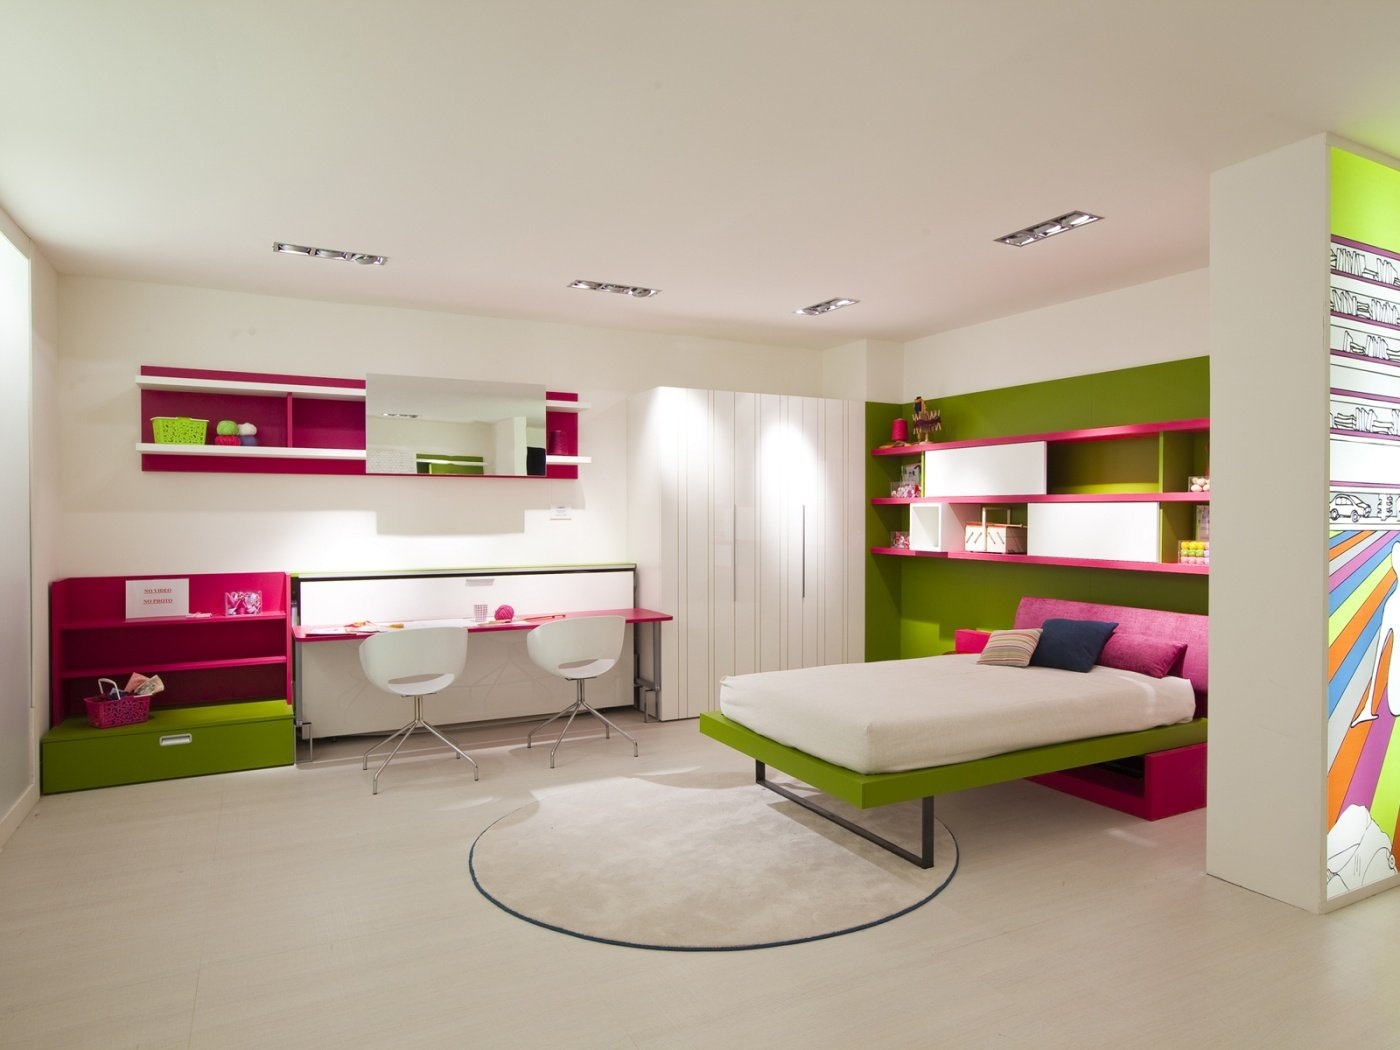 Swell Pink And Green Bedroom Interior Design Ideas Home Interior And Landscaping Ologienasavecom